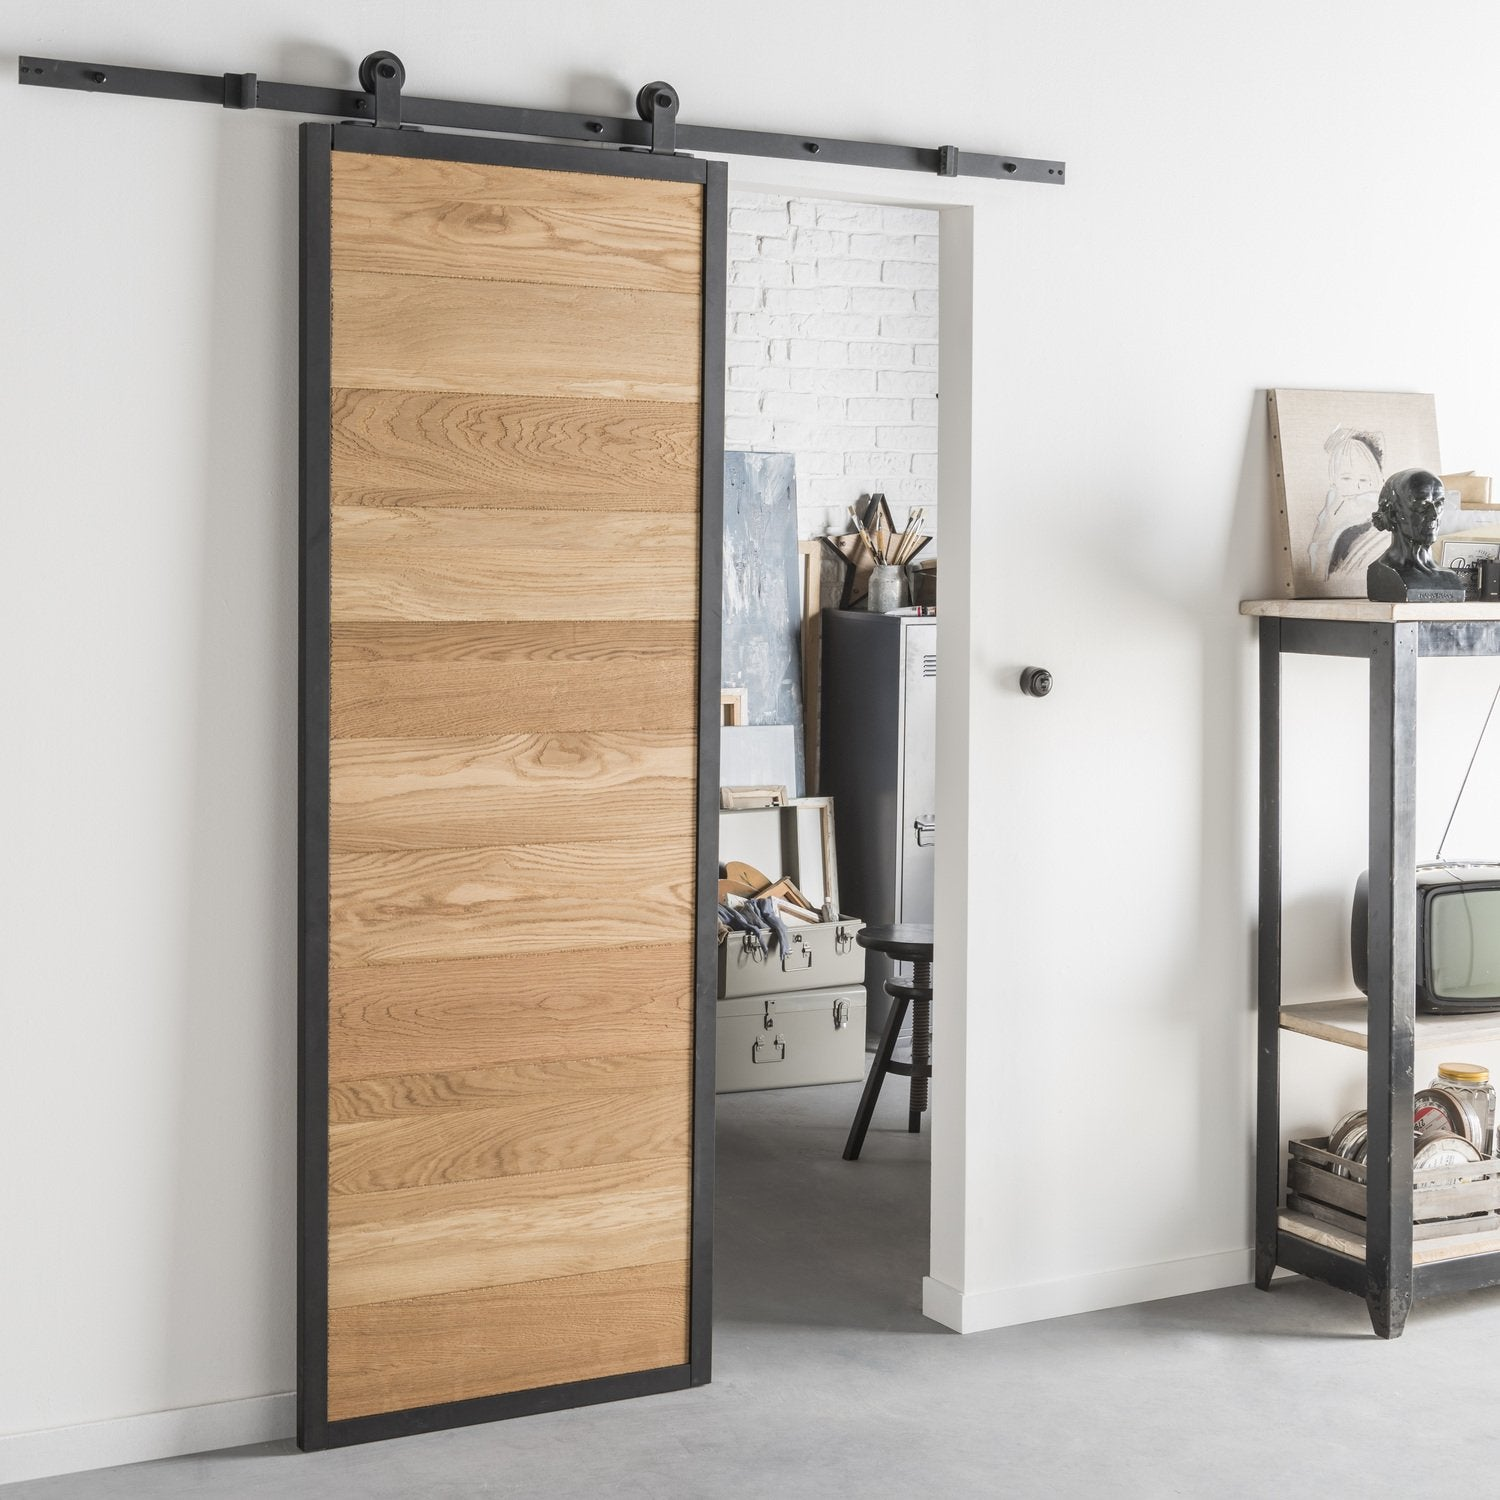 good tout style industriel pour une porte coulissante en bois et alu with kit porte coulissante. Black Bedroom Furniture Sets. Home Design Ideas